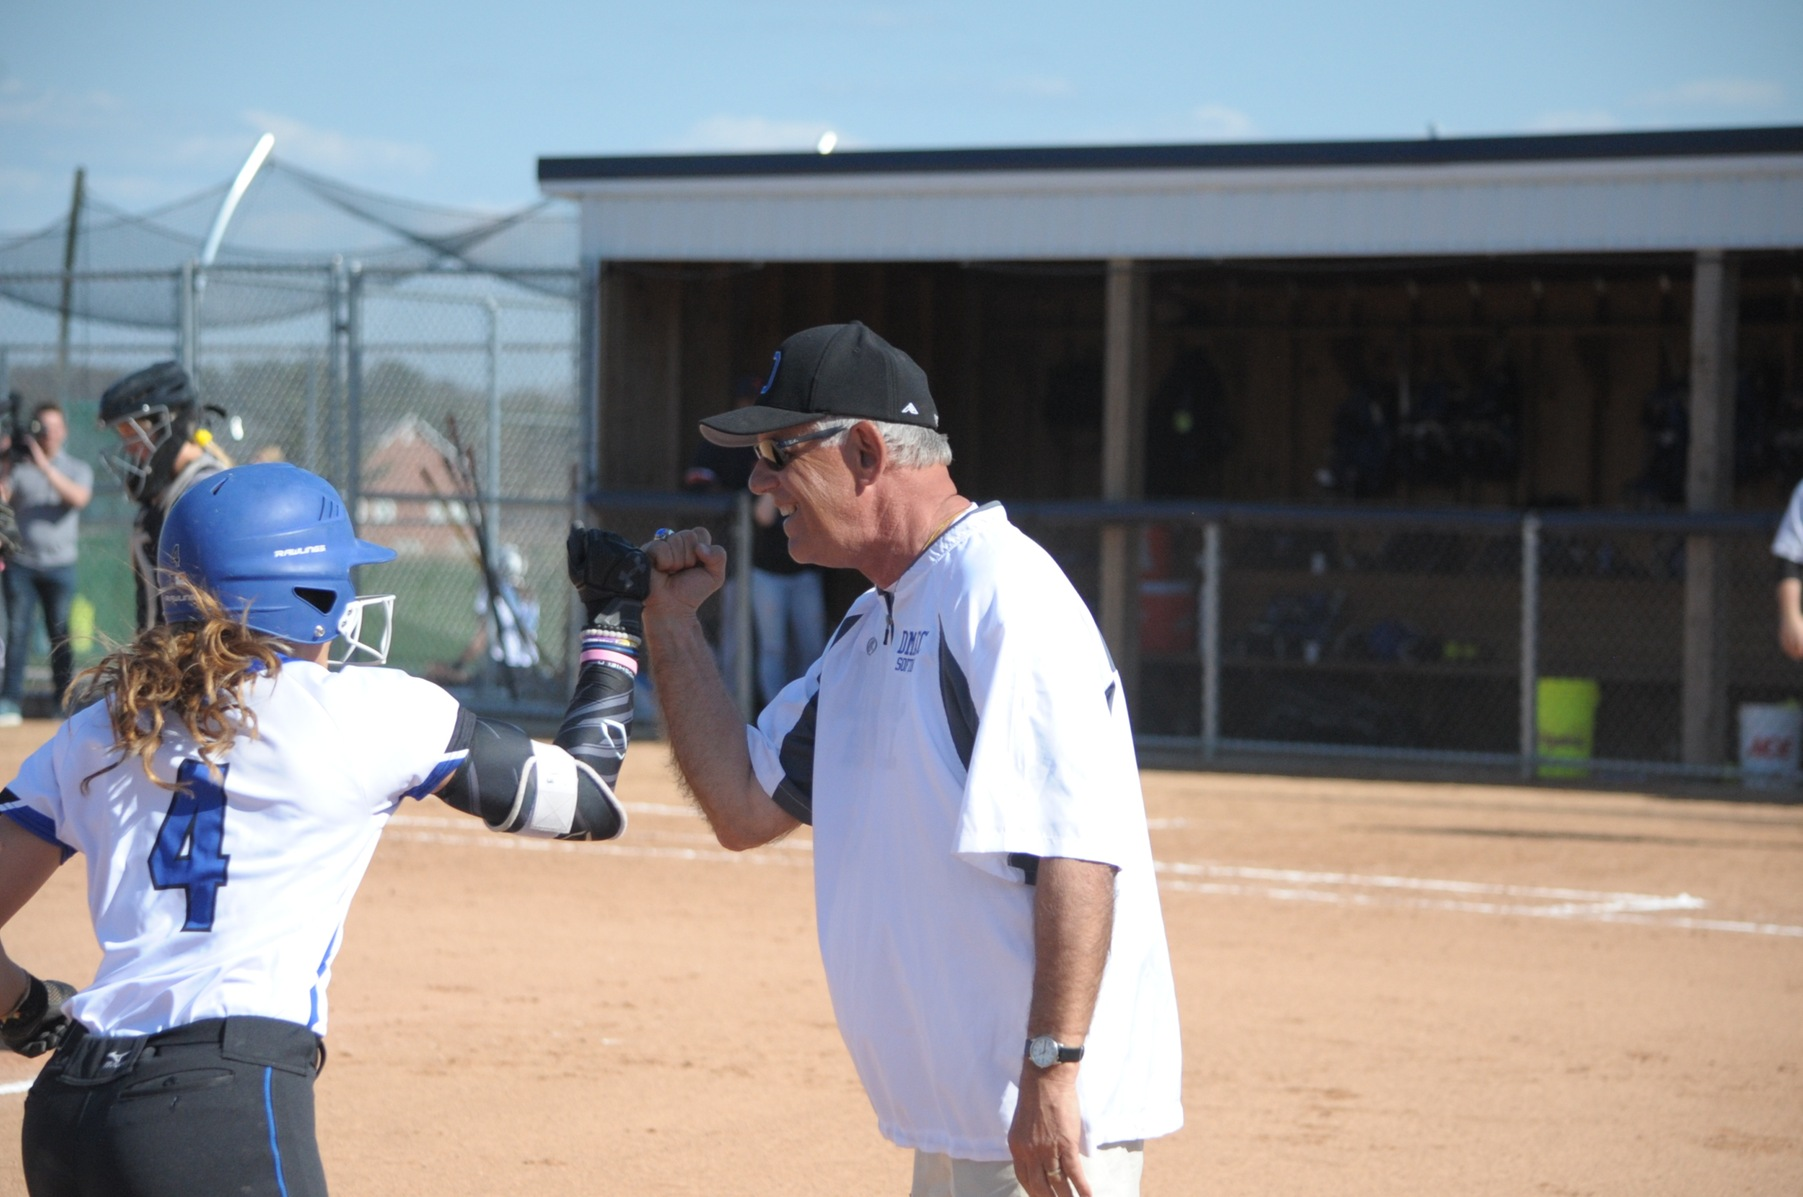 DMACC softball team tops Mott in national tournament debut